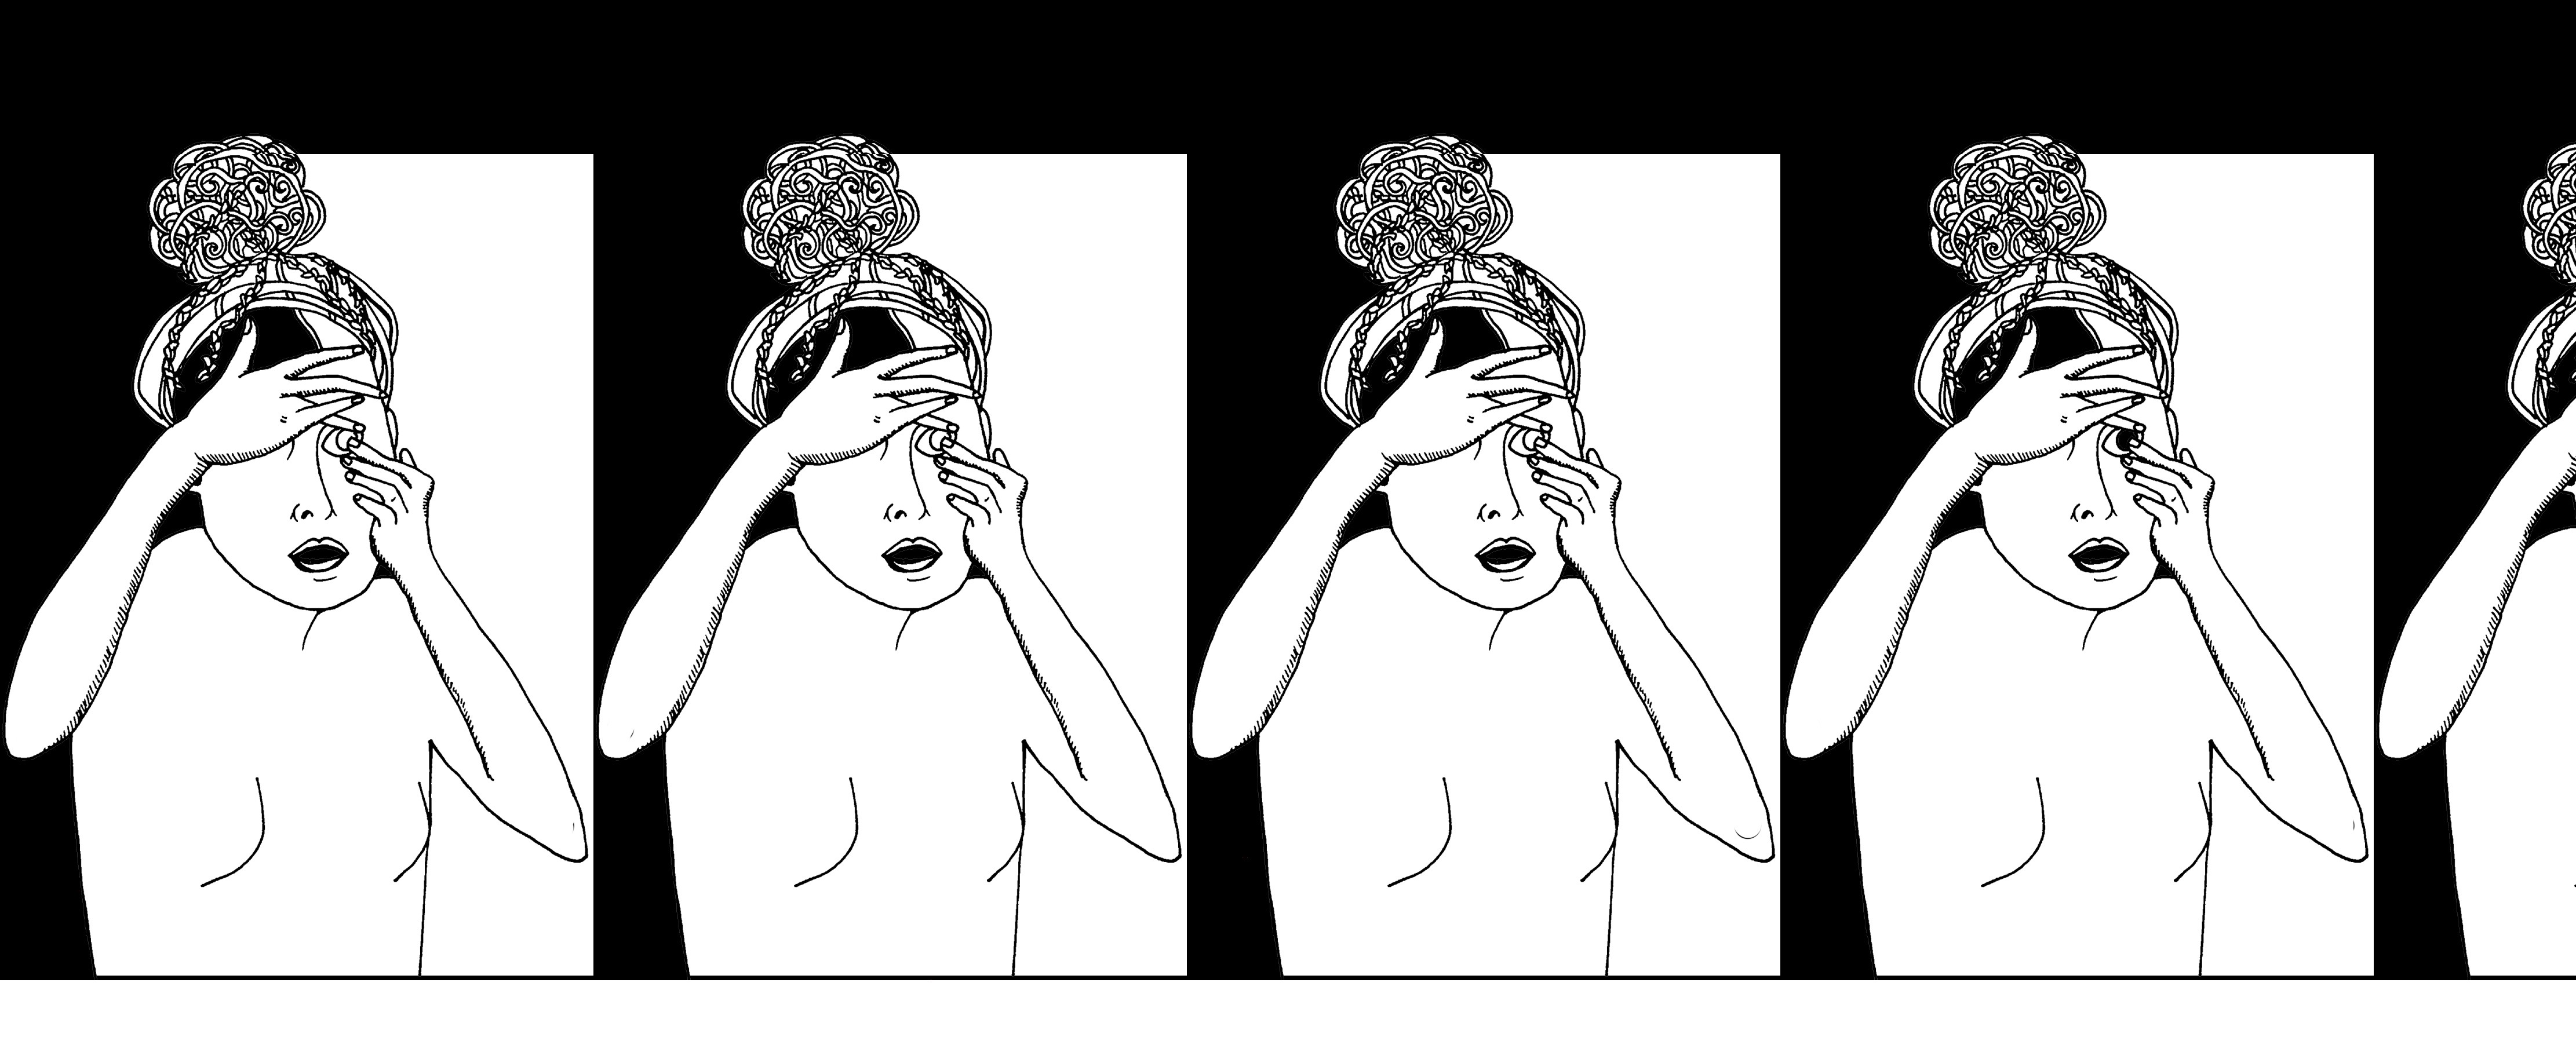 A black and white illustration of a woman who is touching her finger to her eyeball as if to place in a contact. The image repeats 3.5 times across the page. The background is black, with a white rectangle behind each repetition of the woman.